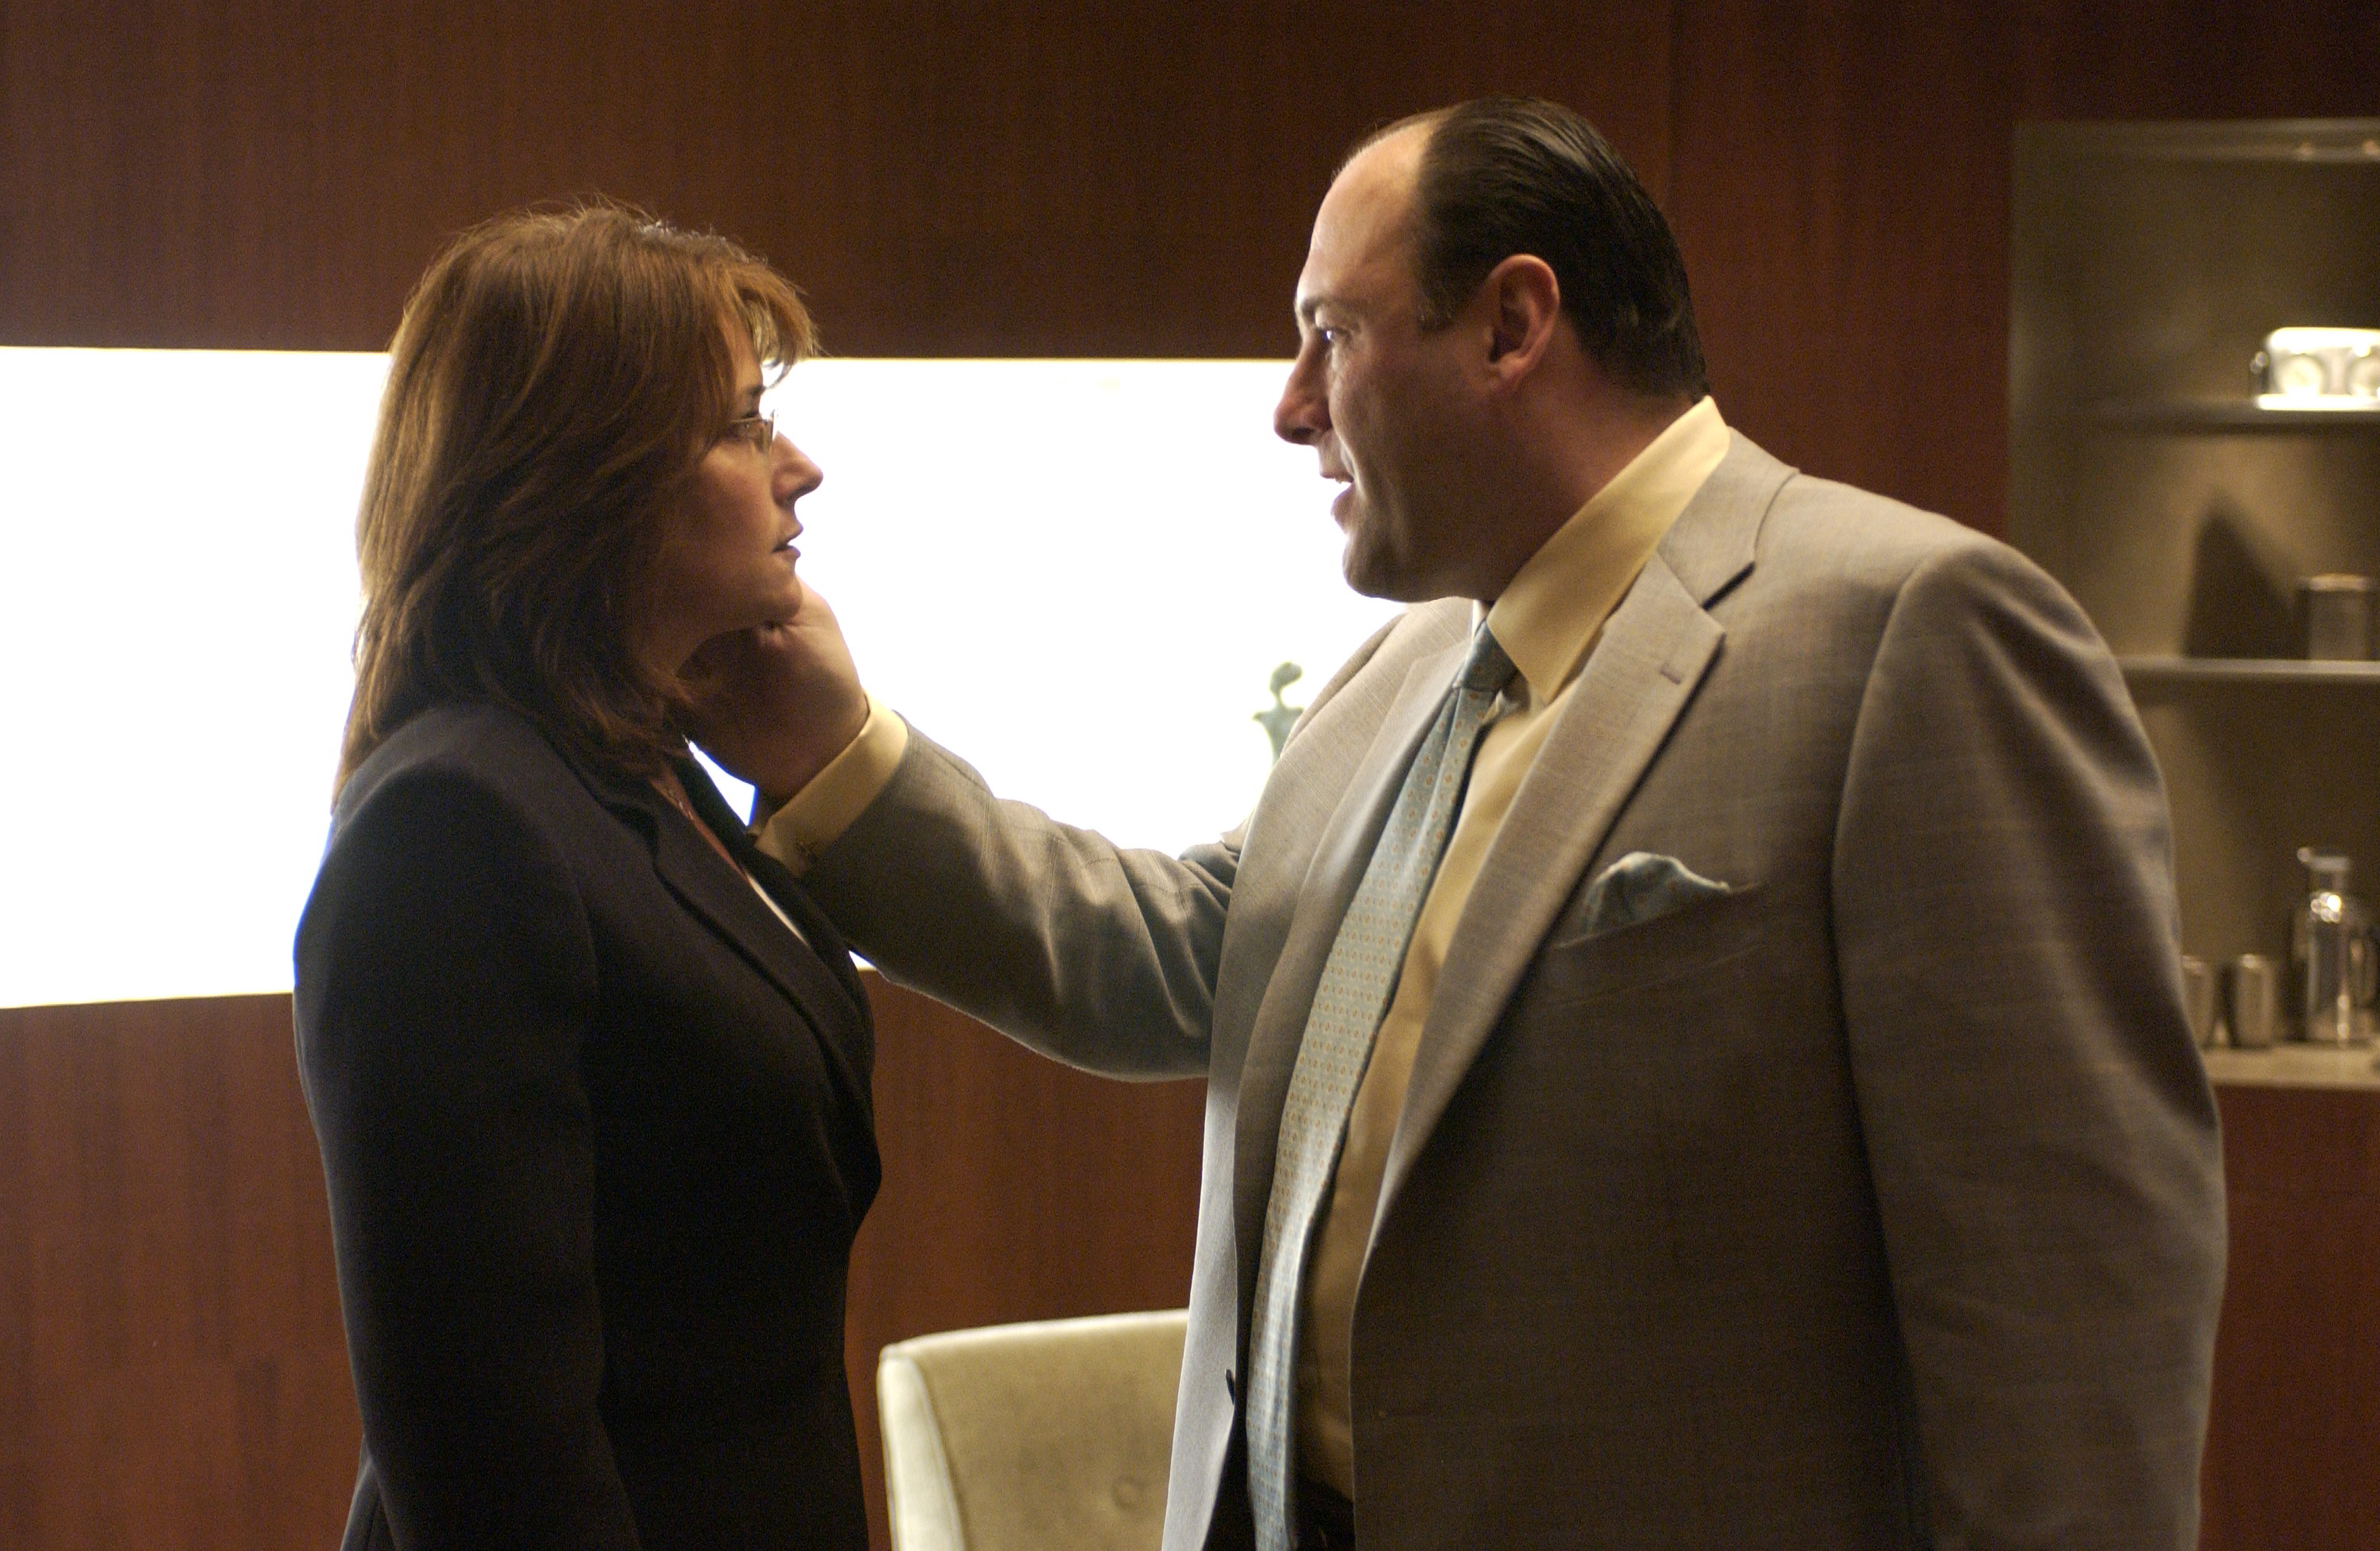 Dr Melfi (Lorraine Bracco) and Tony Soprano (James Gandolfini) in The Sopranos (HBO)